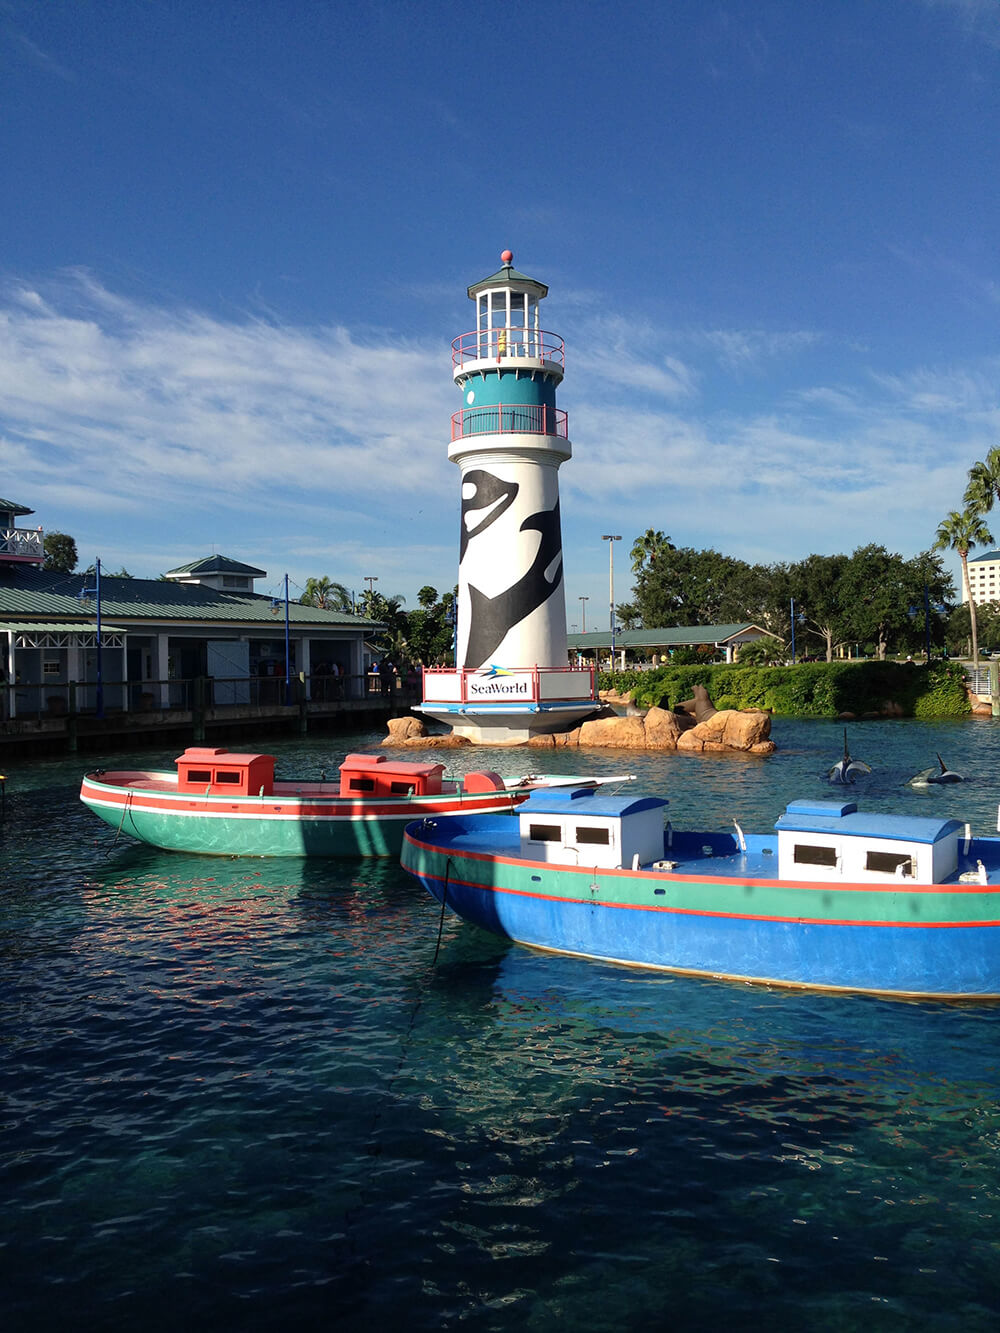 Our Favorite SeaWorld Orlando Rides